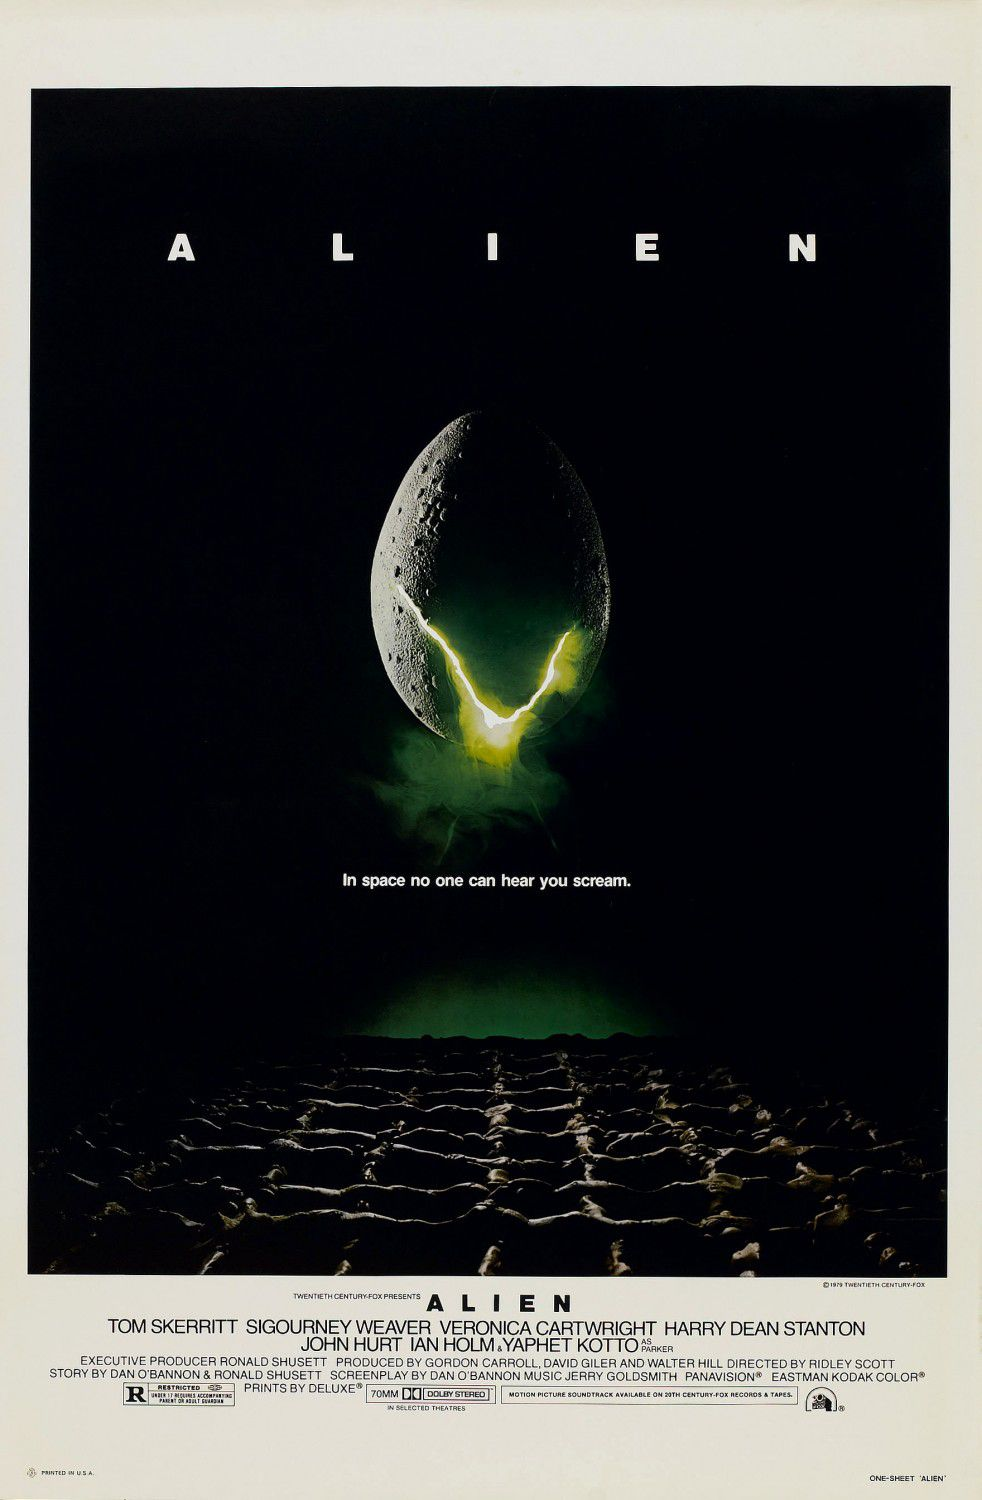 Alien - first film poster - egg - uovo